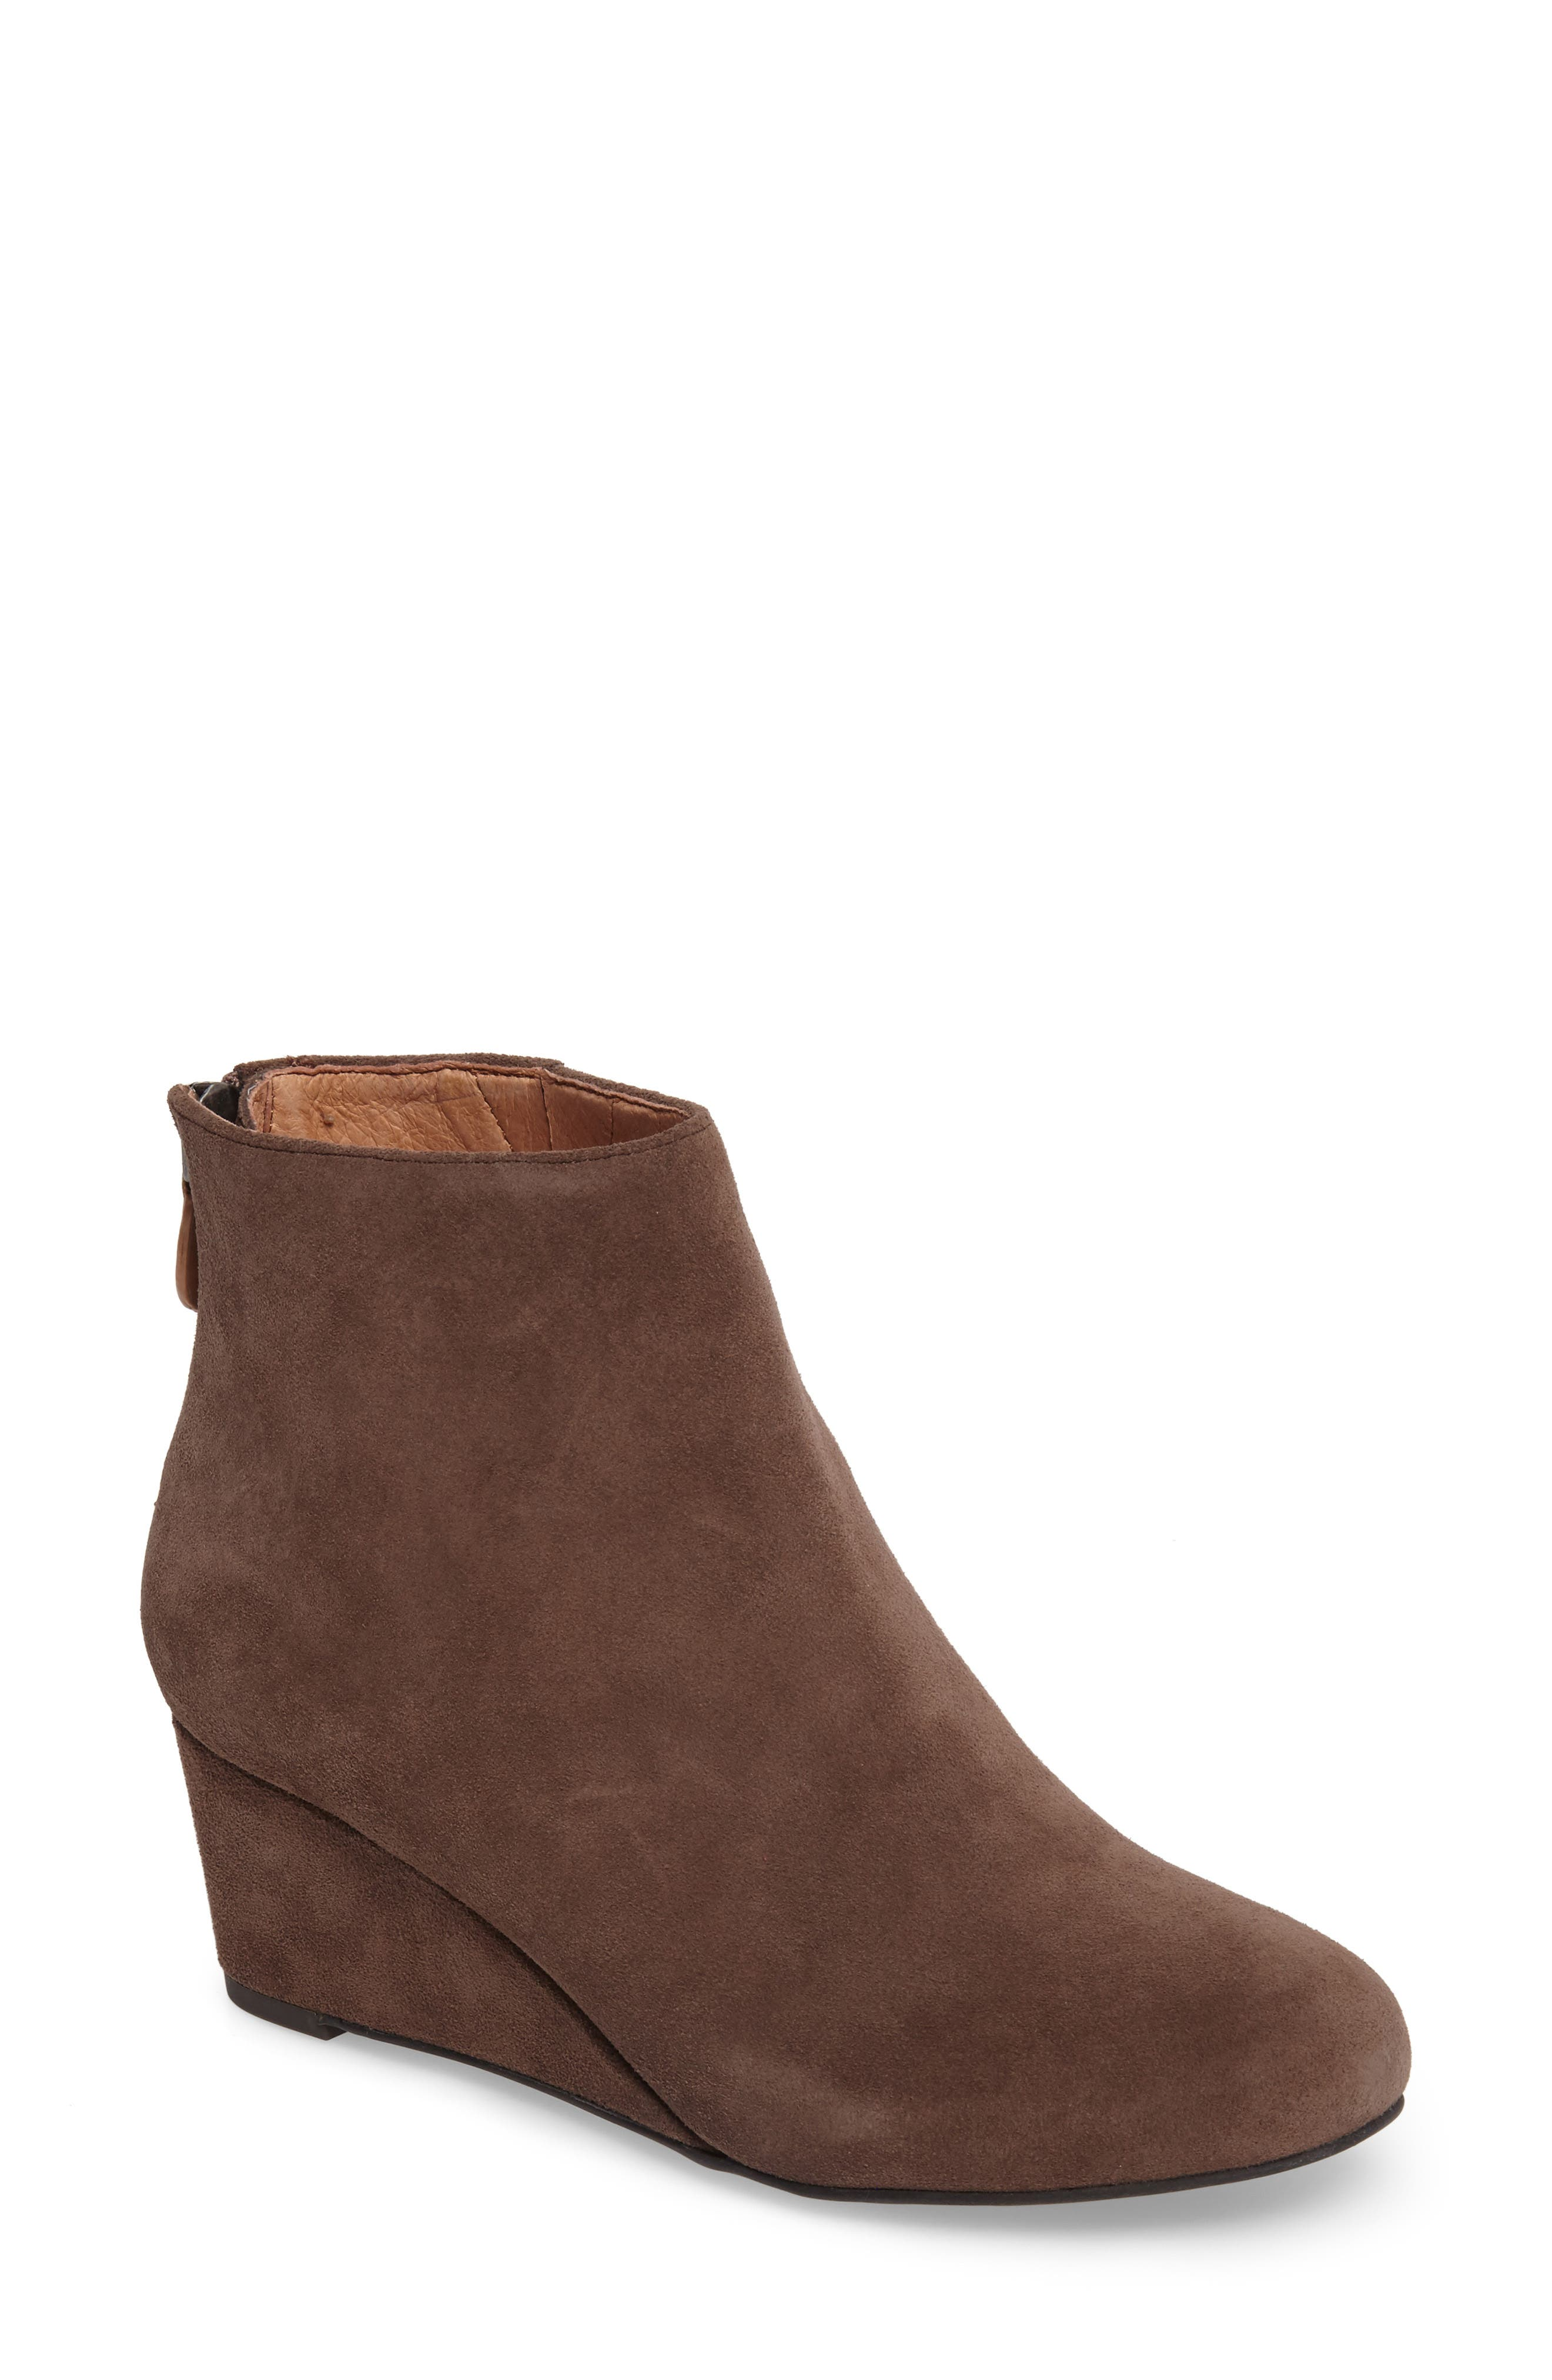 GENTLE SOULS BY KENNETH COLE,                             Vicki Wedge Bootie,                             Main thumbnail 1, color,                             DARK BROWN SUEDE